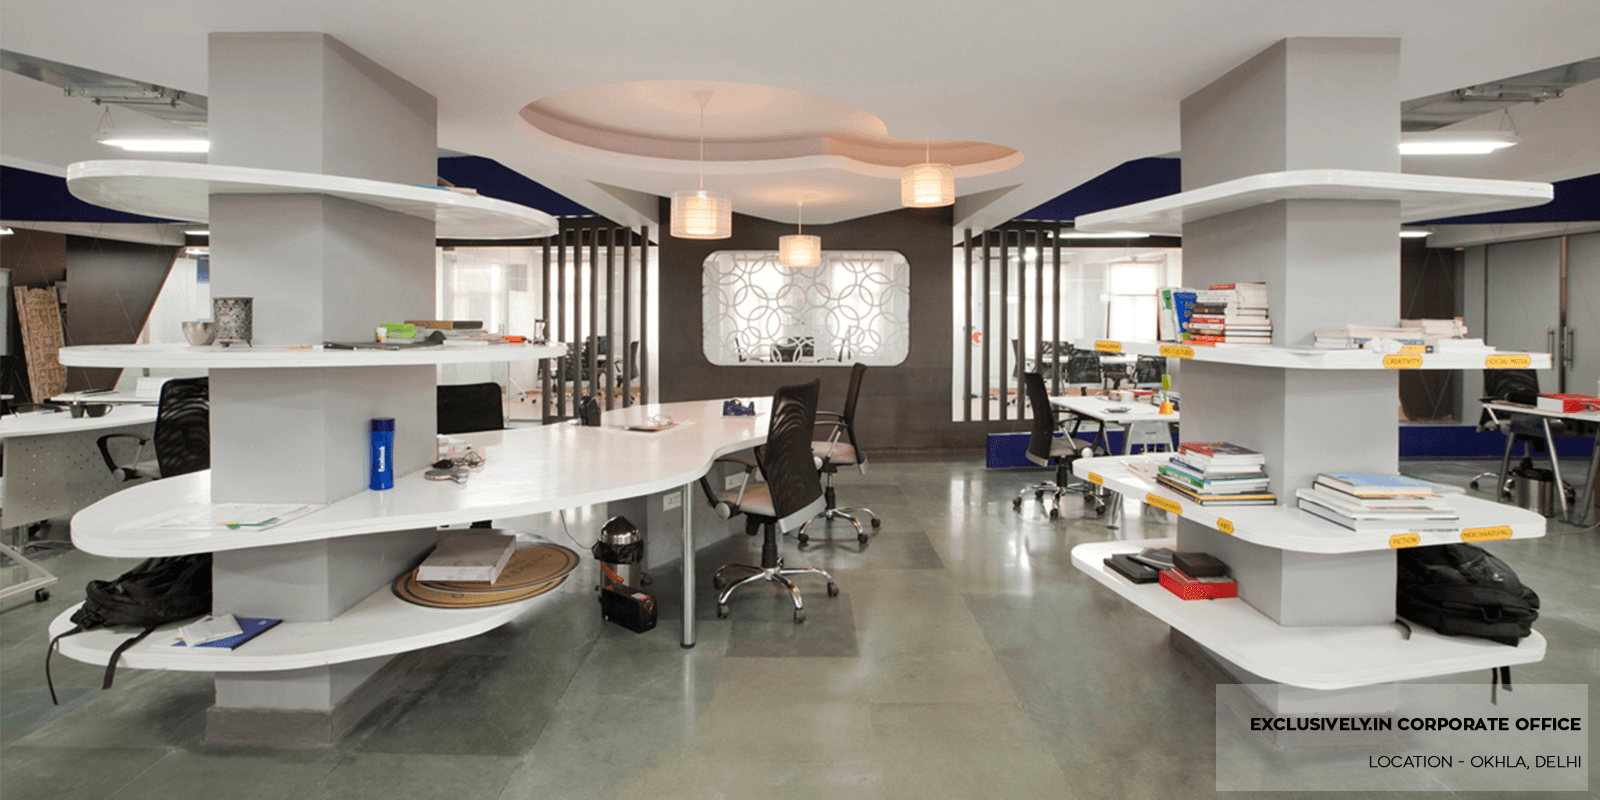 exclusively-the-novarch-architects-best-architects-in-cr-park-south-delhi-110019exclusively-the-novarch-architects-best-architects-in-cr-park-south-delhi-110019